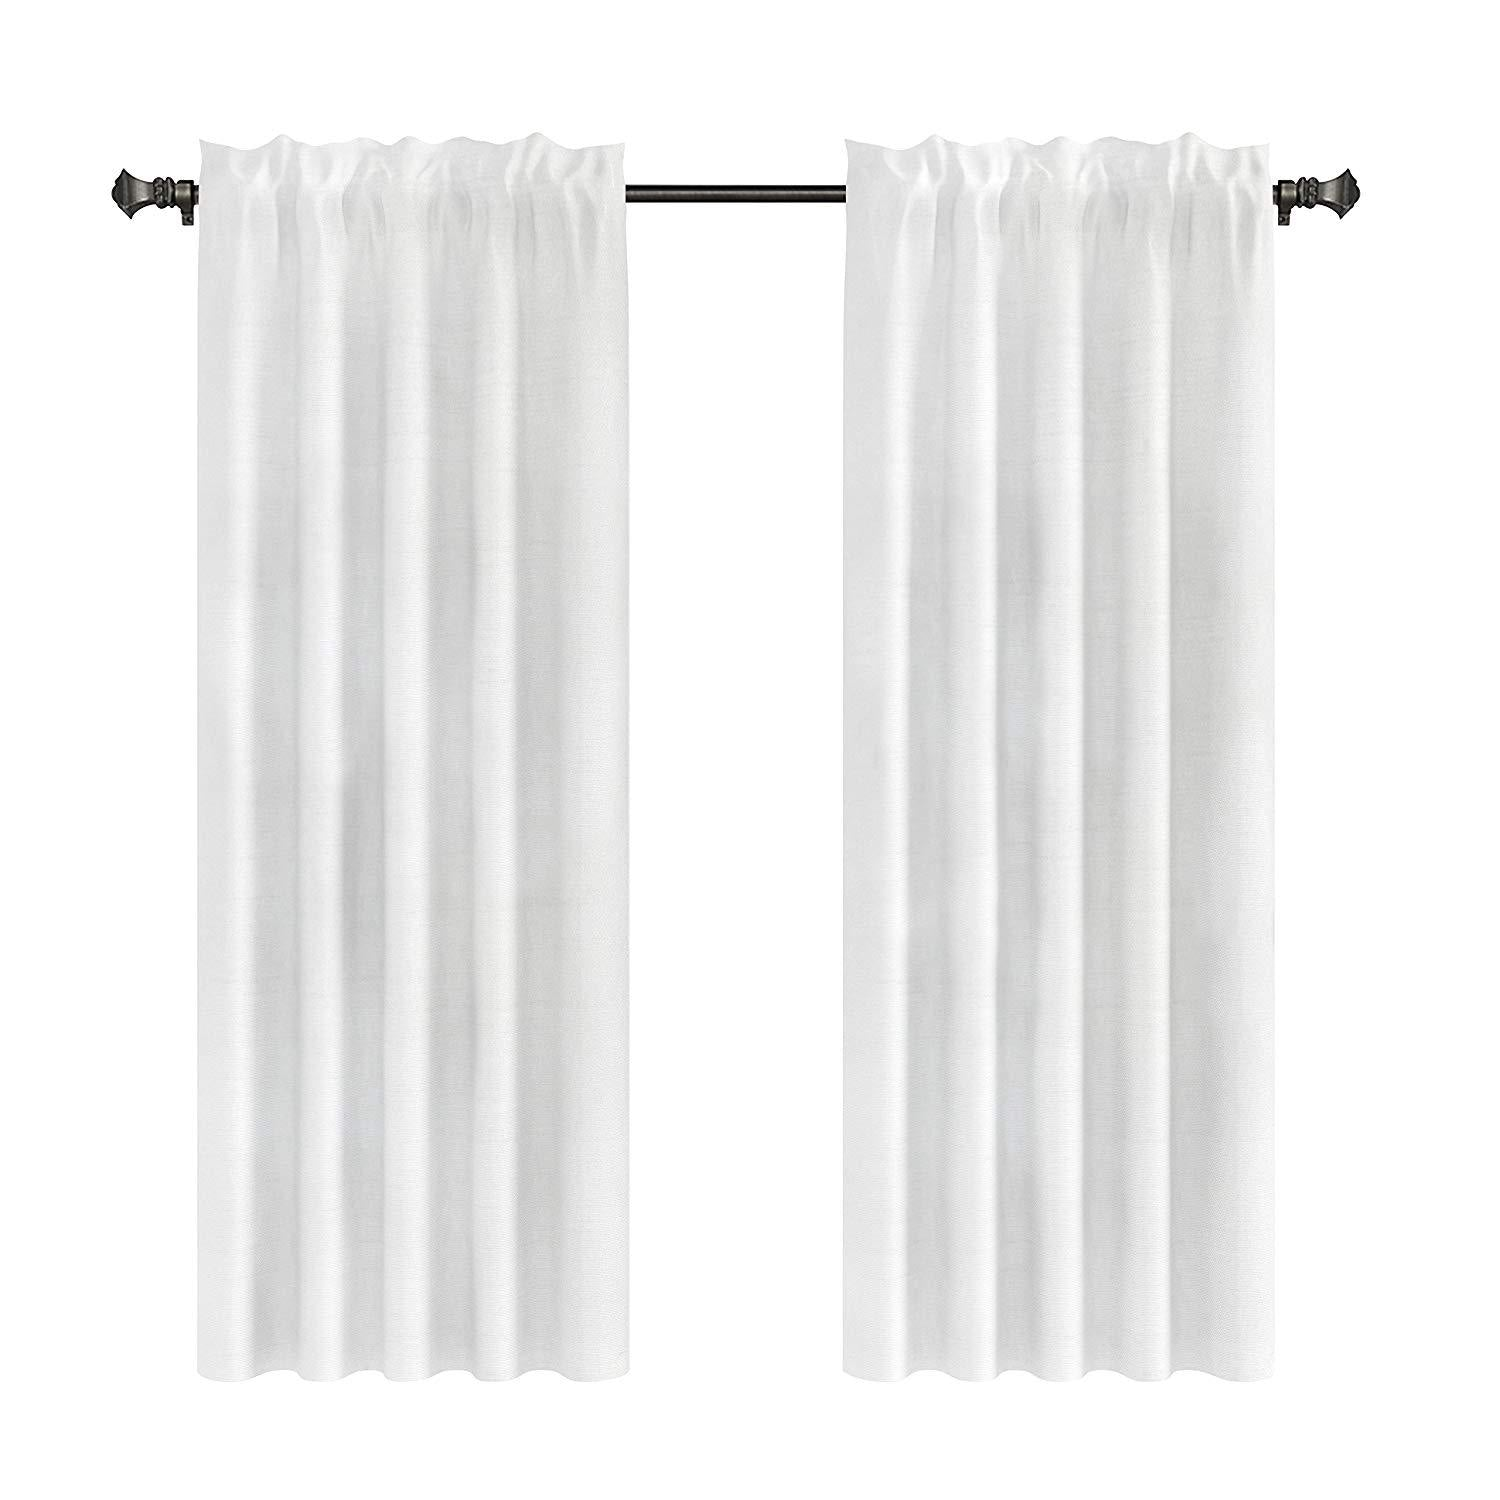 Pair of 2 Faux Silk Drapery Curtain Panels with Lining(two Panels), 5 Colors, 3 Sizes